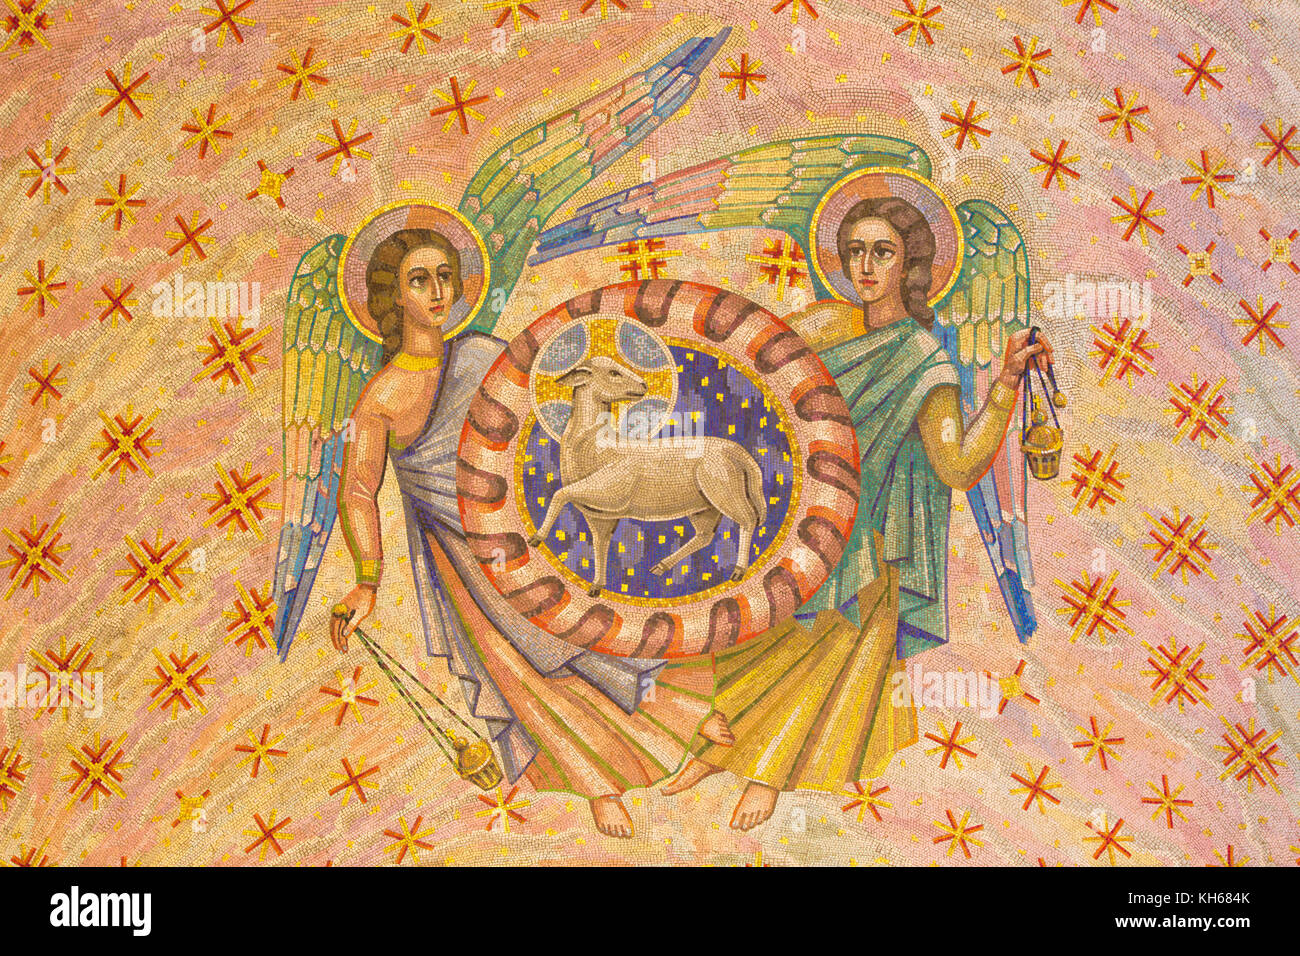 LONDON, GREAT BRITAIN - SEPTEMBER 17, 2017: The mosaic of Lamb of God and andgels in Westminster cathedral and Blessed - Stock Image